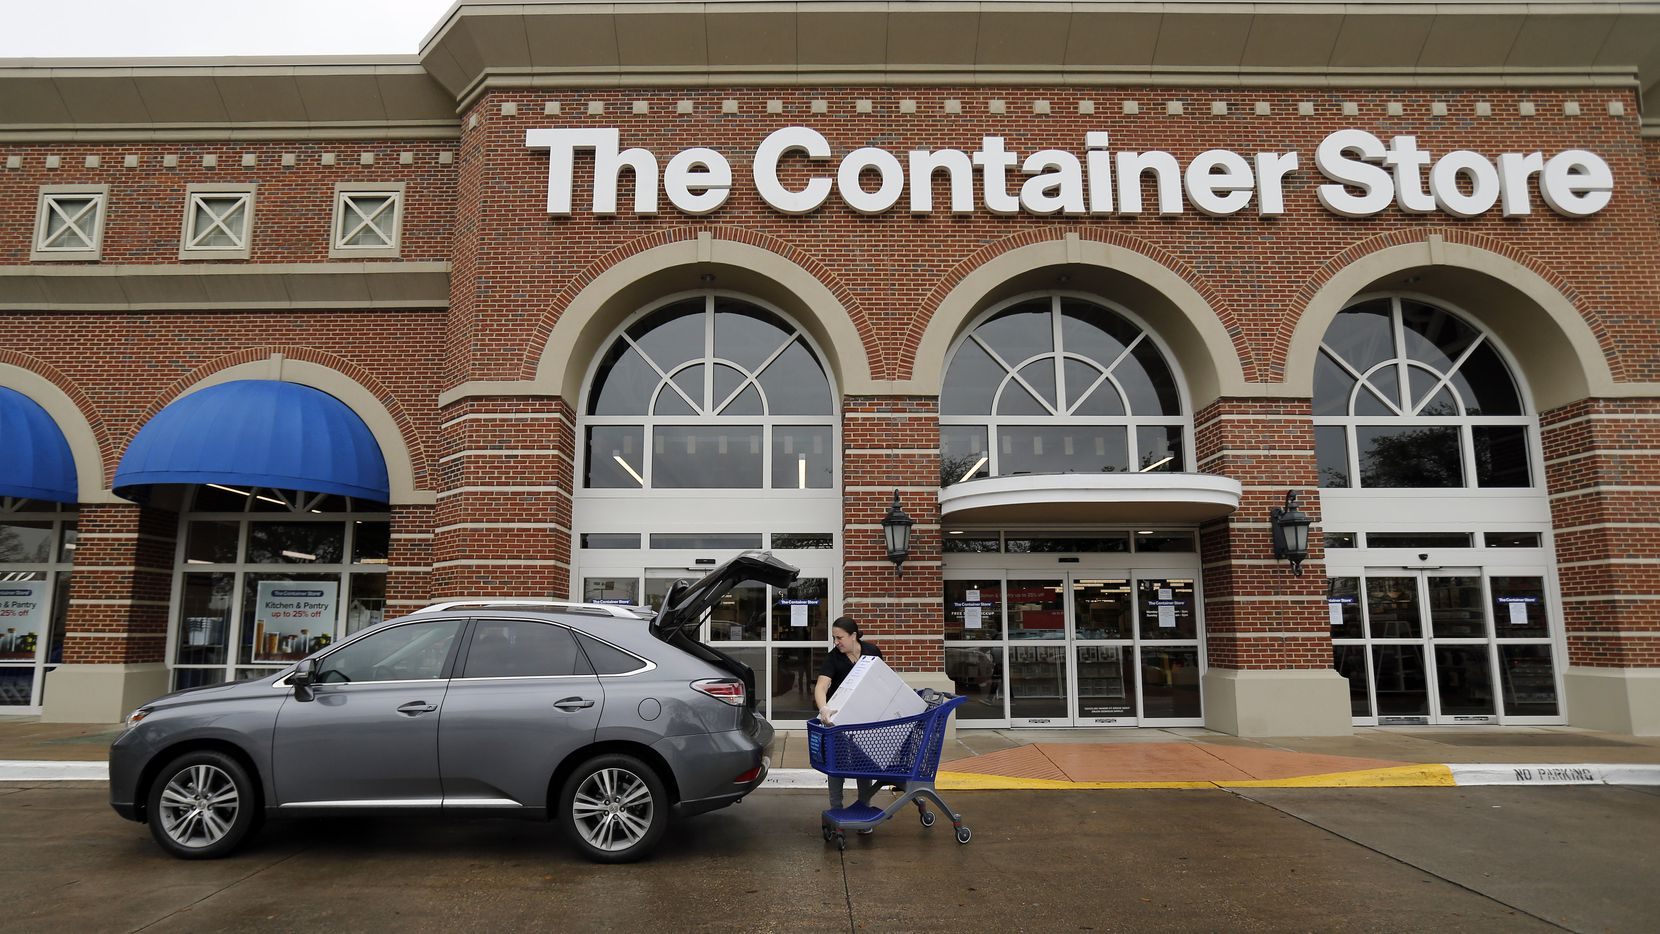 An employee of The Container Store loads an order for a customer waiting in the curbside pickup line, Saturday, April 4, 2020. The store is located across from NorthPark Center in Dallas. Since the coronavirus shelter-in-place went into effect, some businesses have gone to curbside pickup or online only. (Tom Fox/The Dallas Morning News)